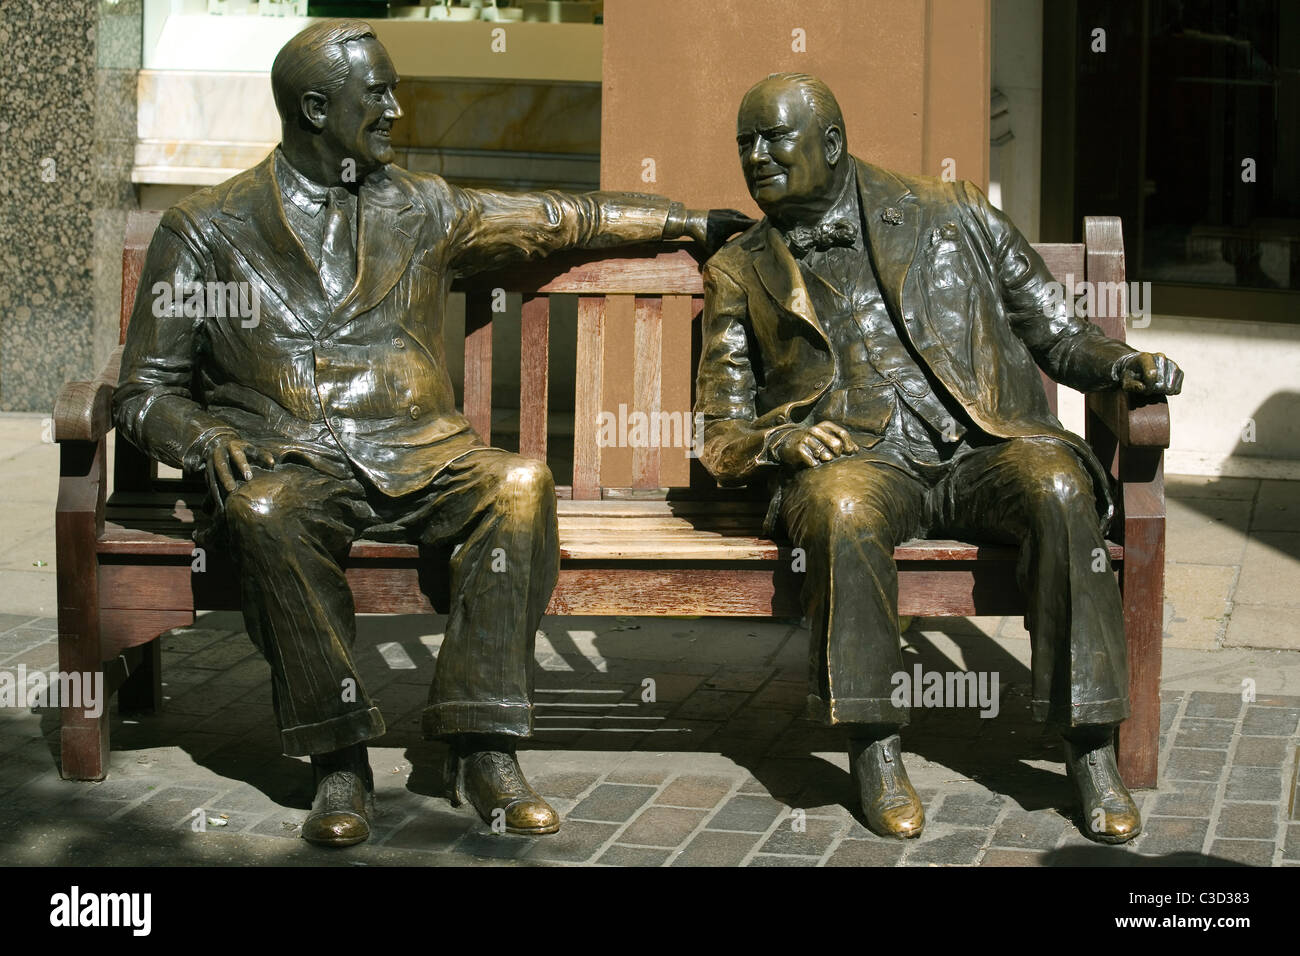 England London Bond street, 'Allies' sculpture of Roosevelt & Churchill sitting on a bench - Stock Image